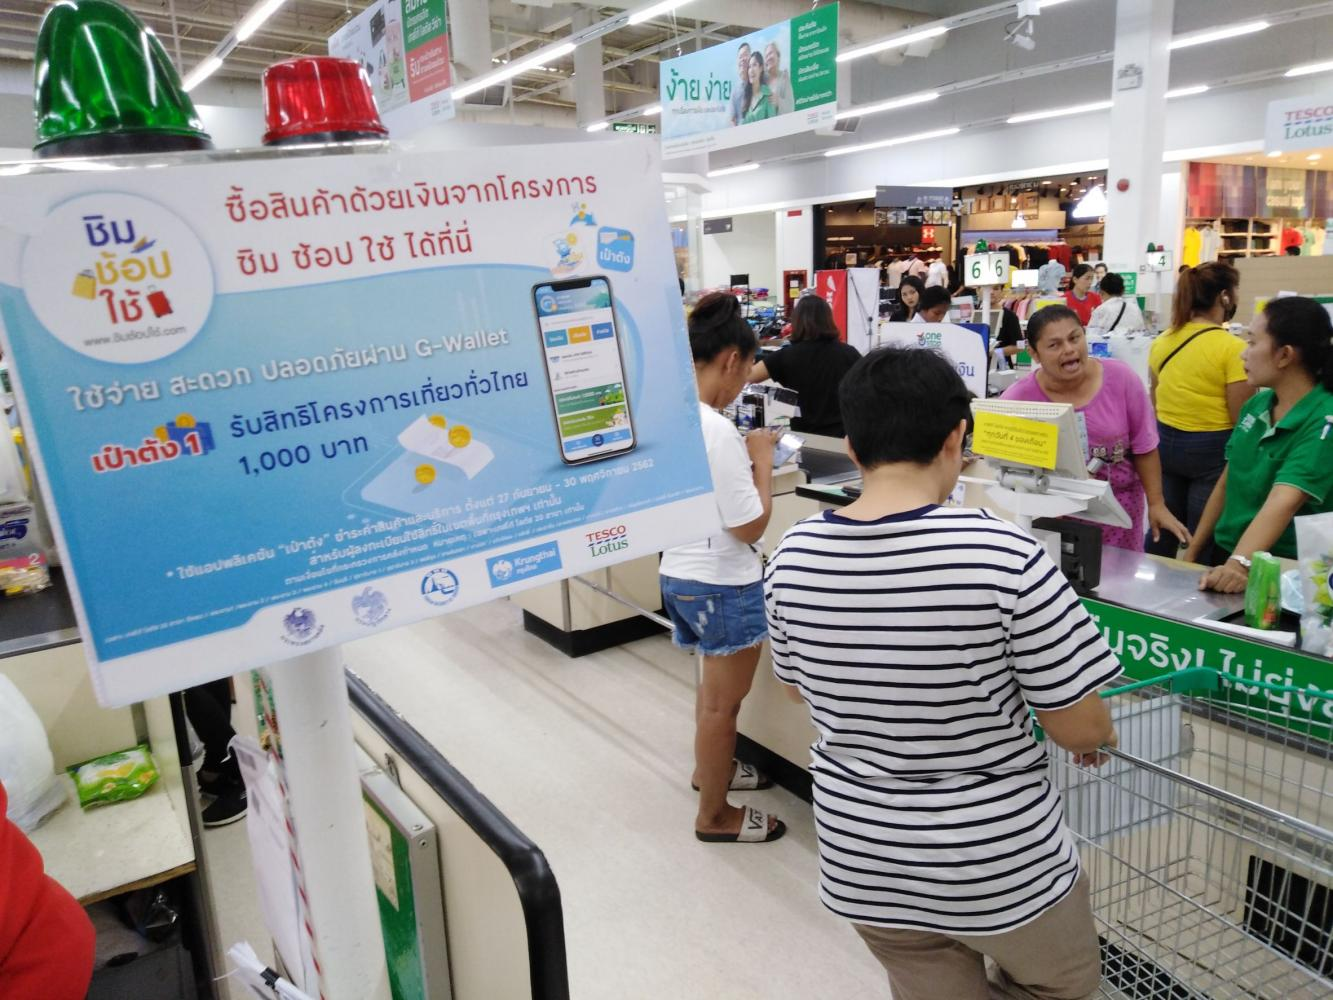 A banner at a Tesco Lotus hypermarket promotes the Taste-Shop-Spend scheme to lure shoppers. The Finance Ministry has blacklisted some operators for inappropriate actions under the scheme.